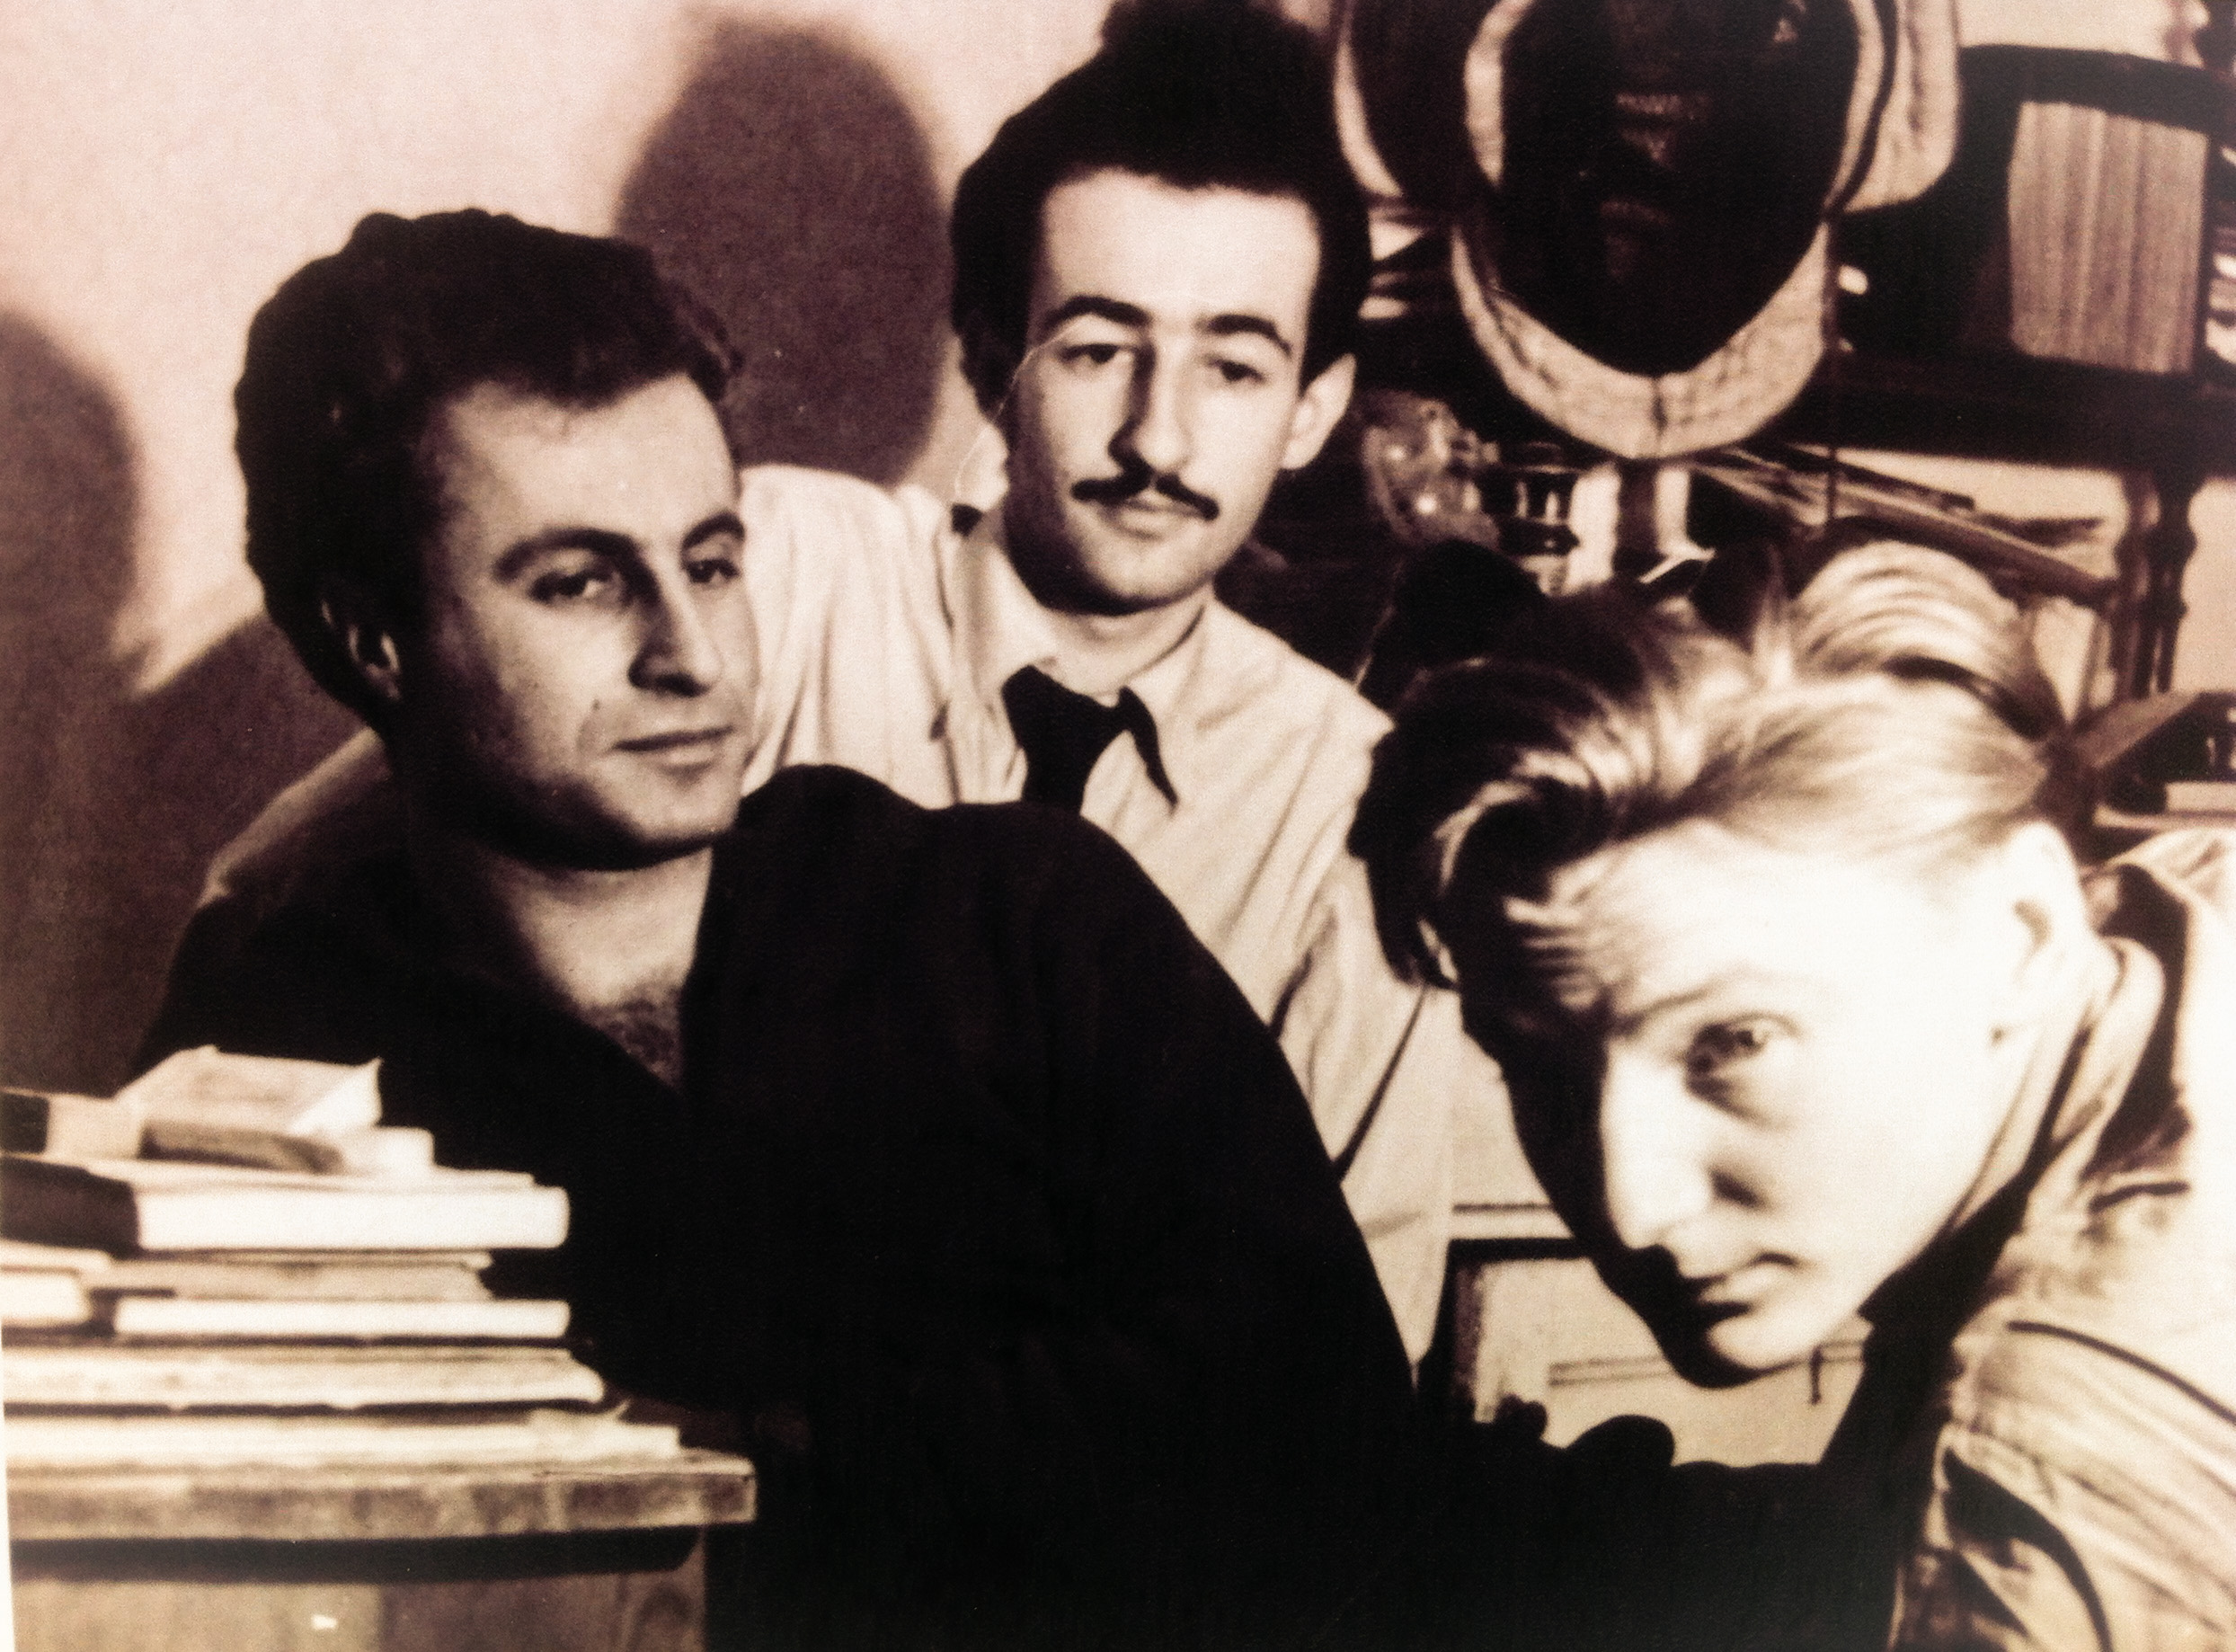 Young Juraj Sajmovic (left) and famous director Juraj Herz (middle) in student house. Photo: Family Archiv of Juraj Sajmovic Junior